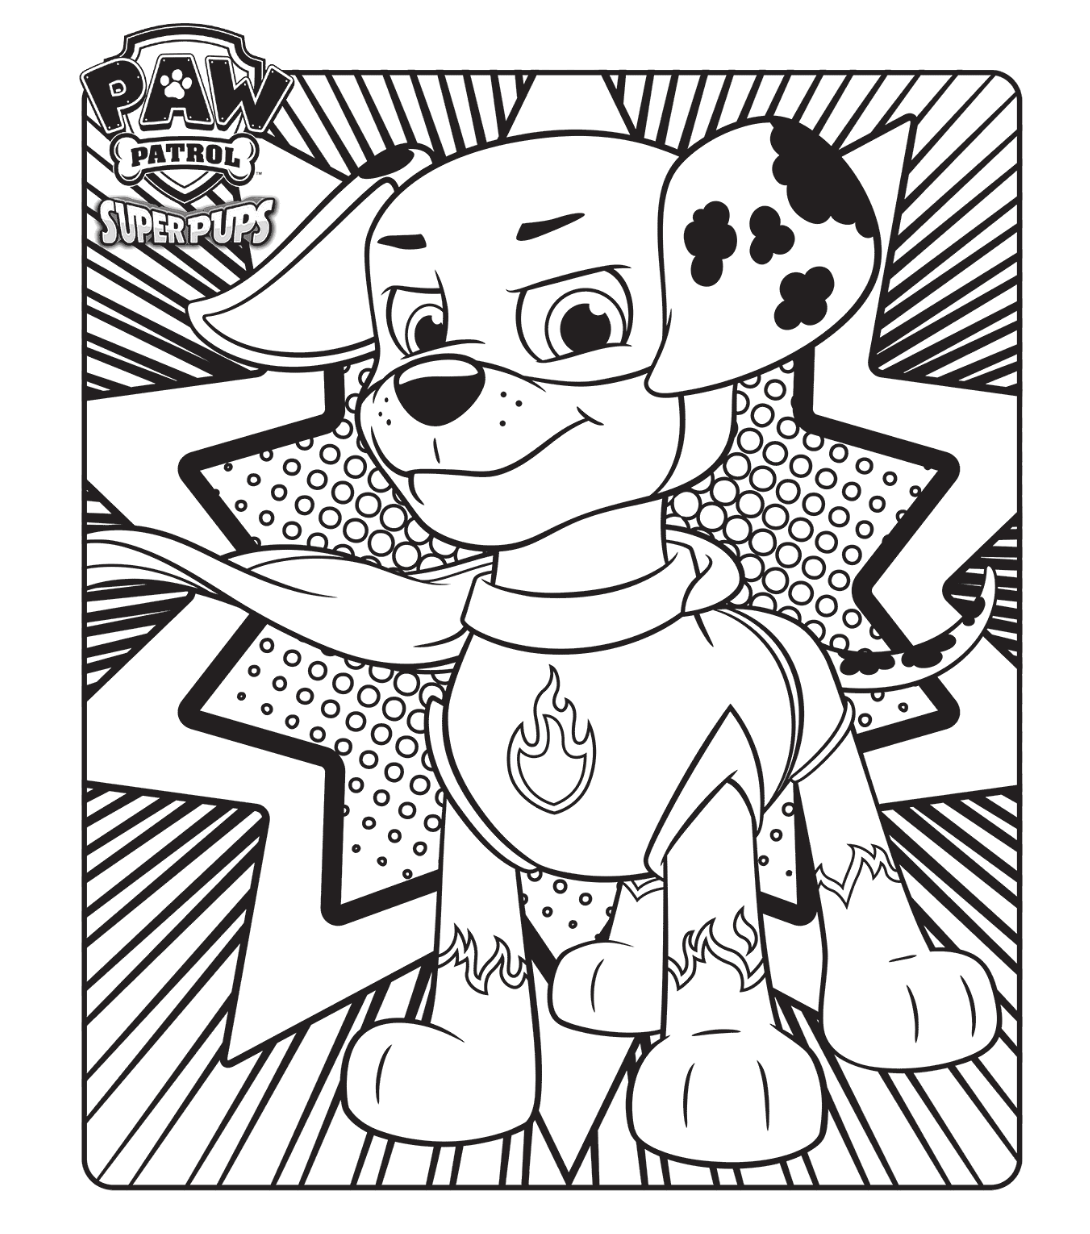 Paw Patrol Super Pups Colouring Page Paw Patrol Coloring Pages Paw Patrol Coloring Paw Patrol Super Pup